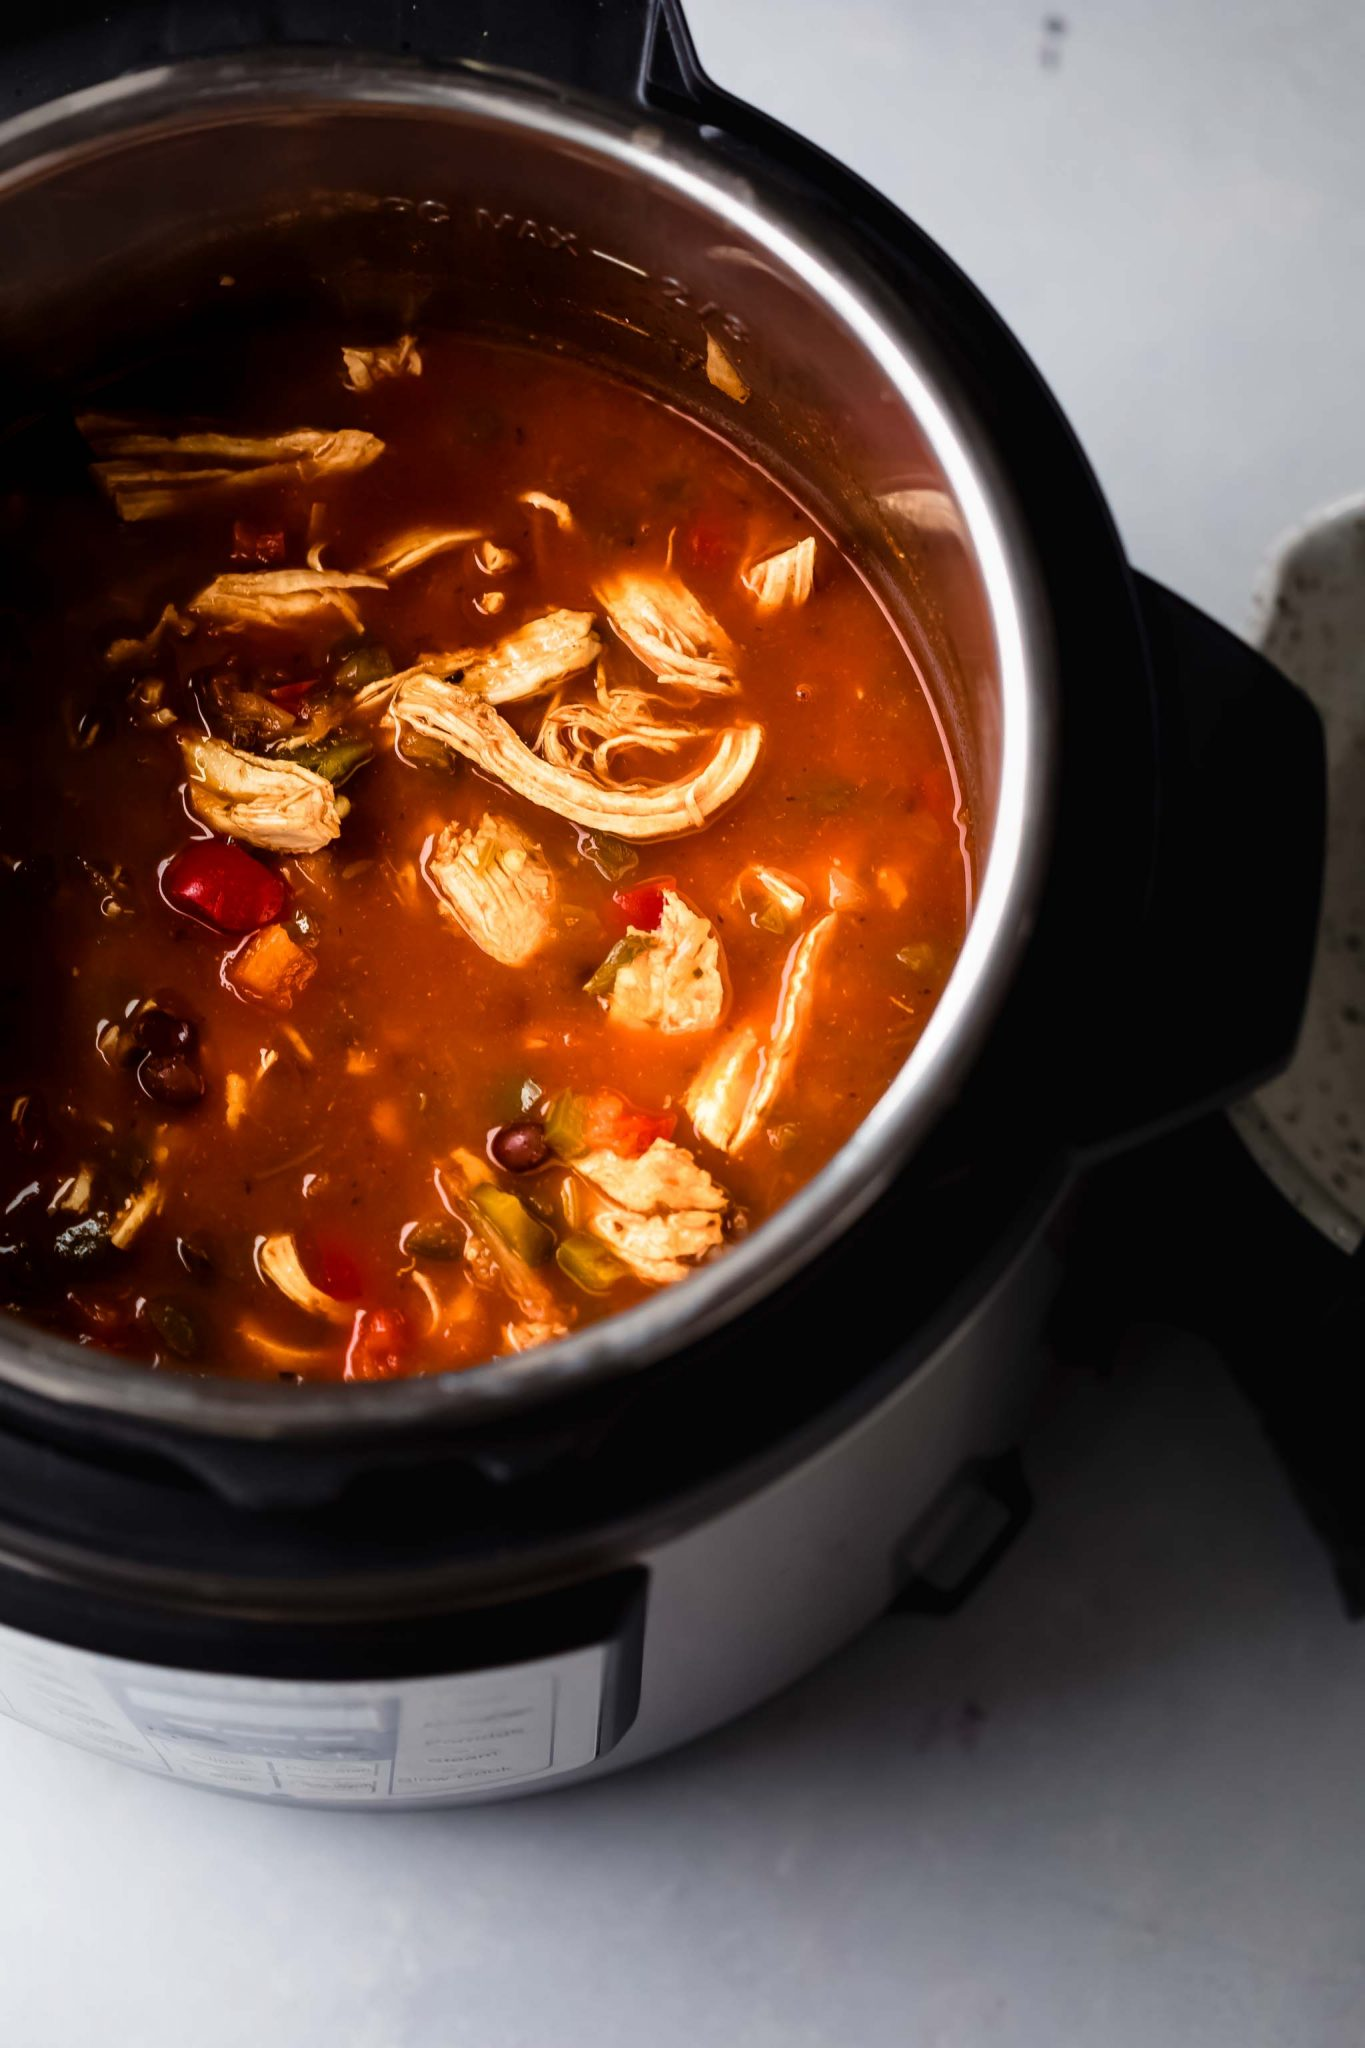 Chicken tortilla soup after cooking in instant pot.